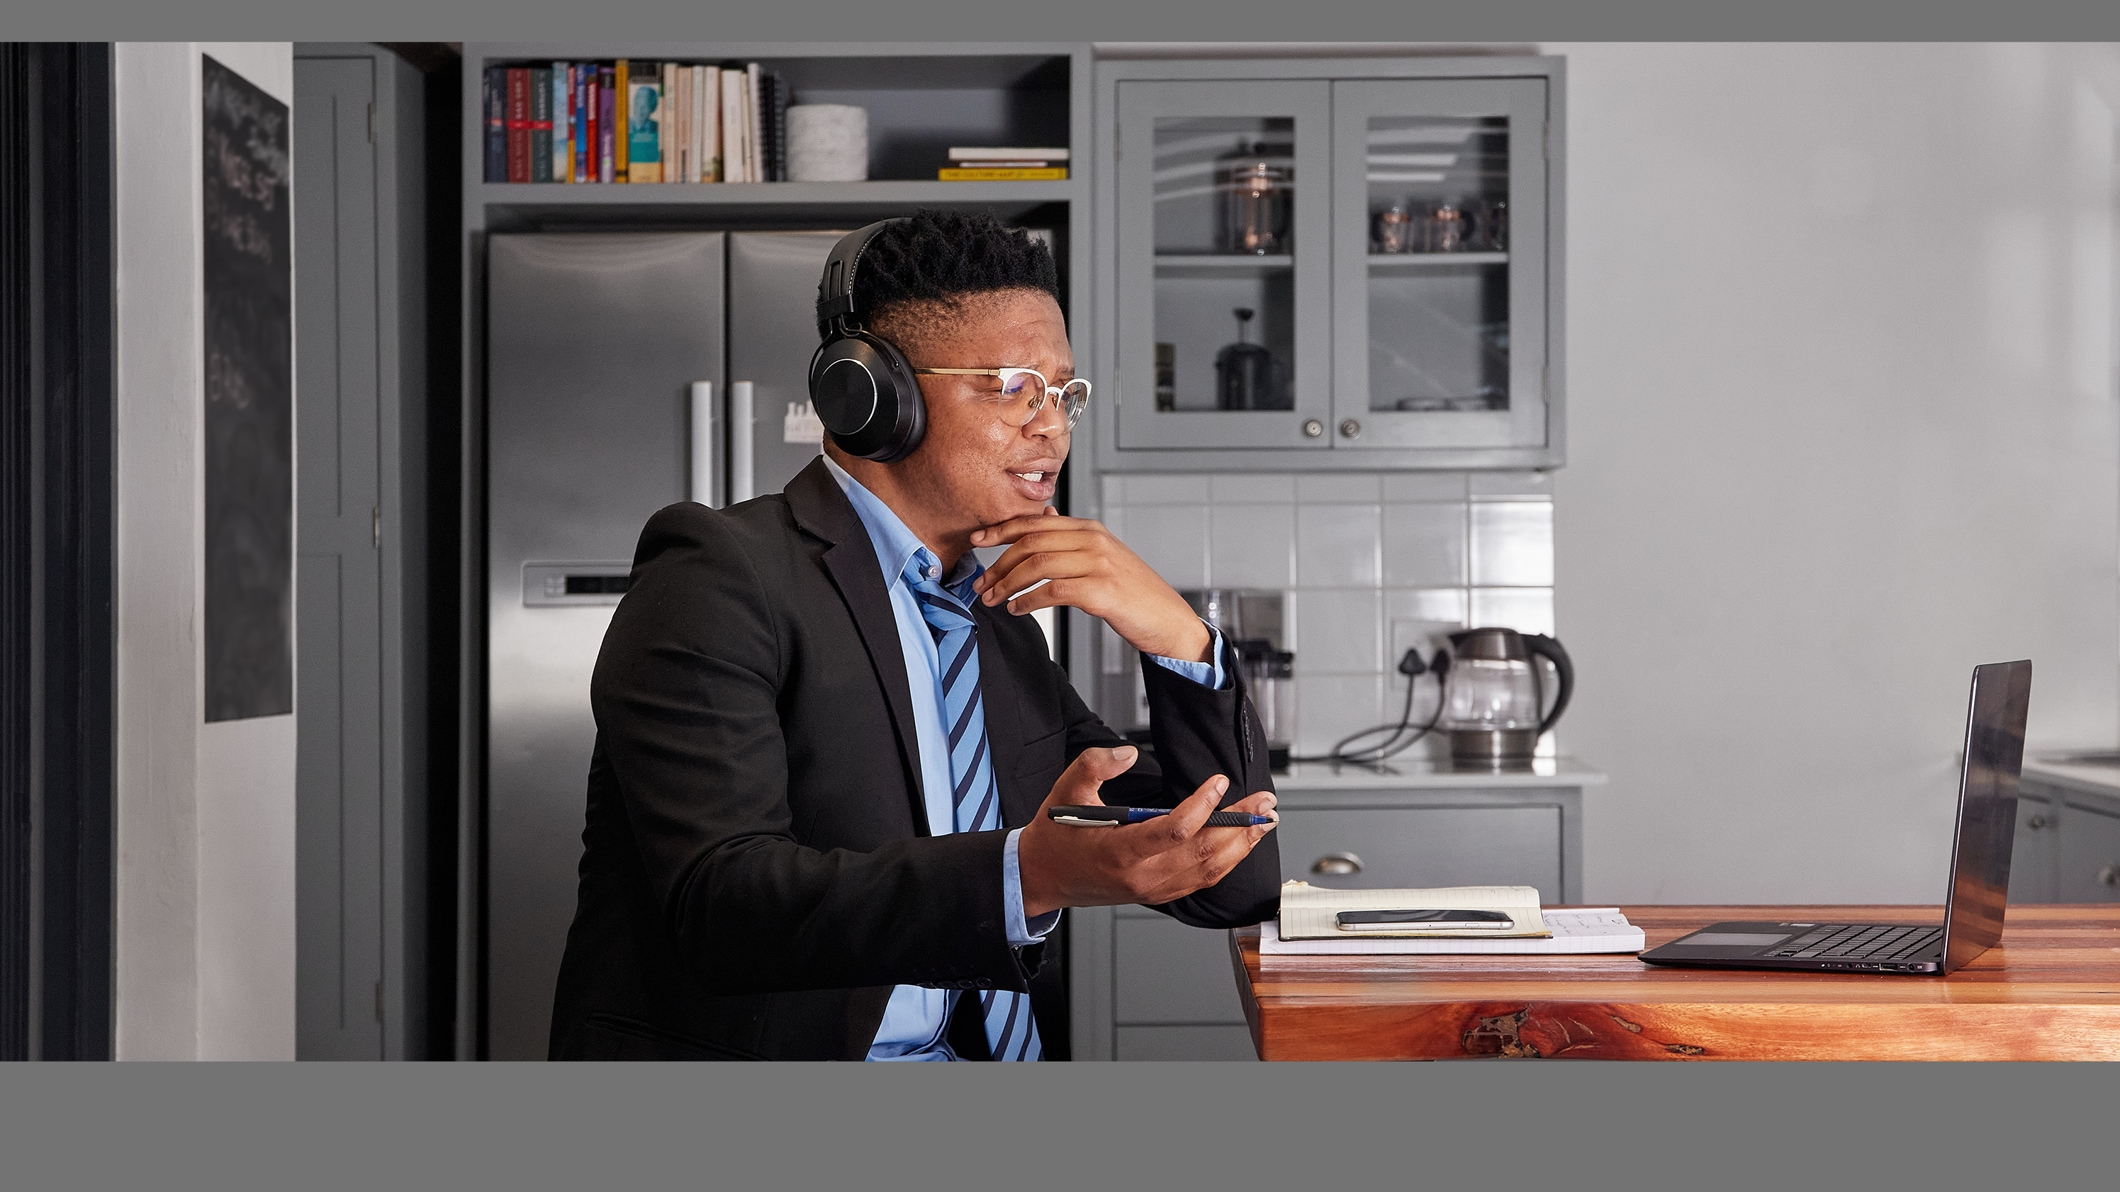 A person wearing a suit and tie using a laptop while sitting in a kitchen.